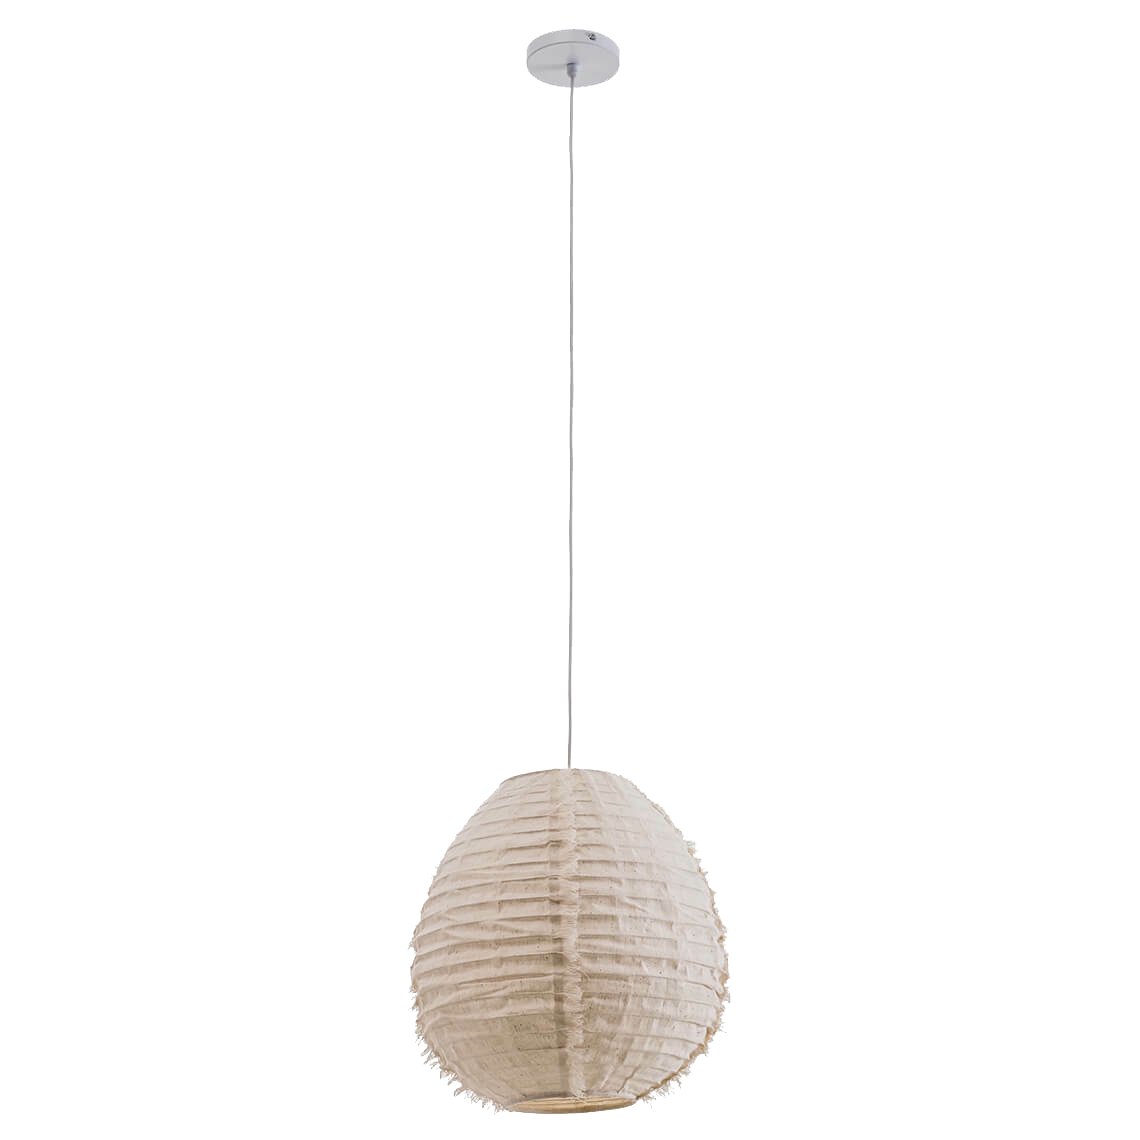 39137 Popular Category - Deep etches_Pendant Lighting.png